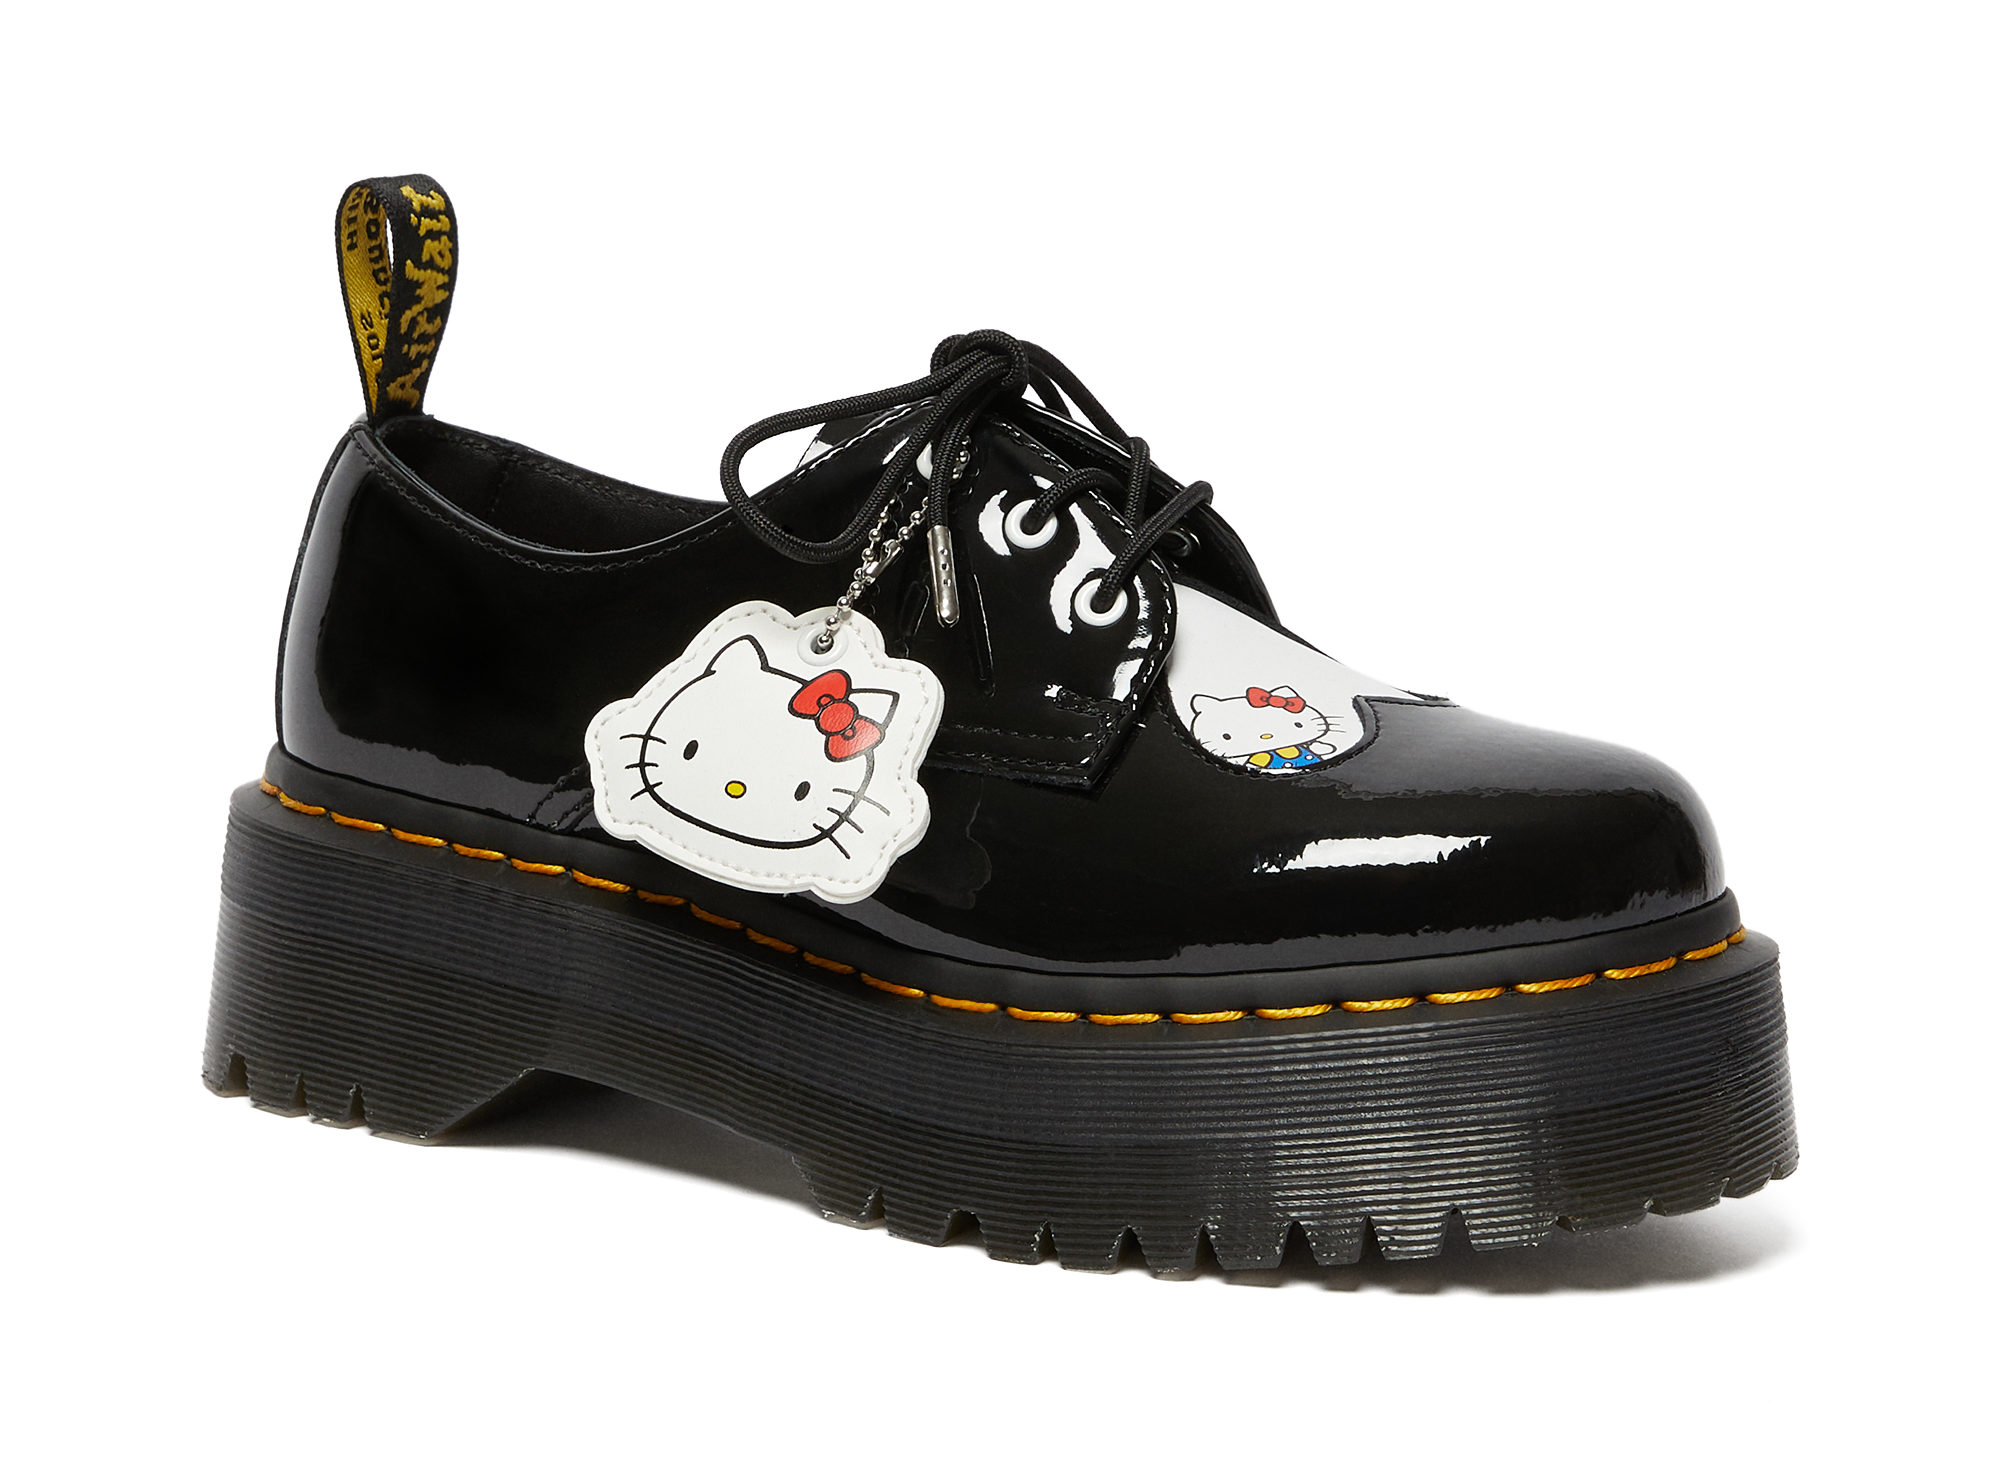 Dr. Martens X Hello Kitty - WhyNot Mag